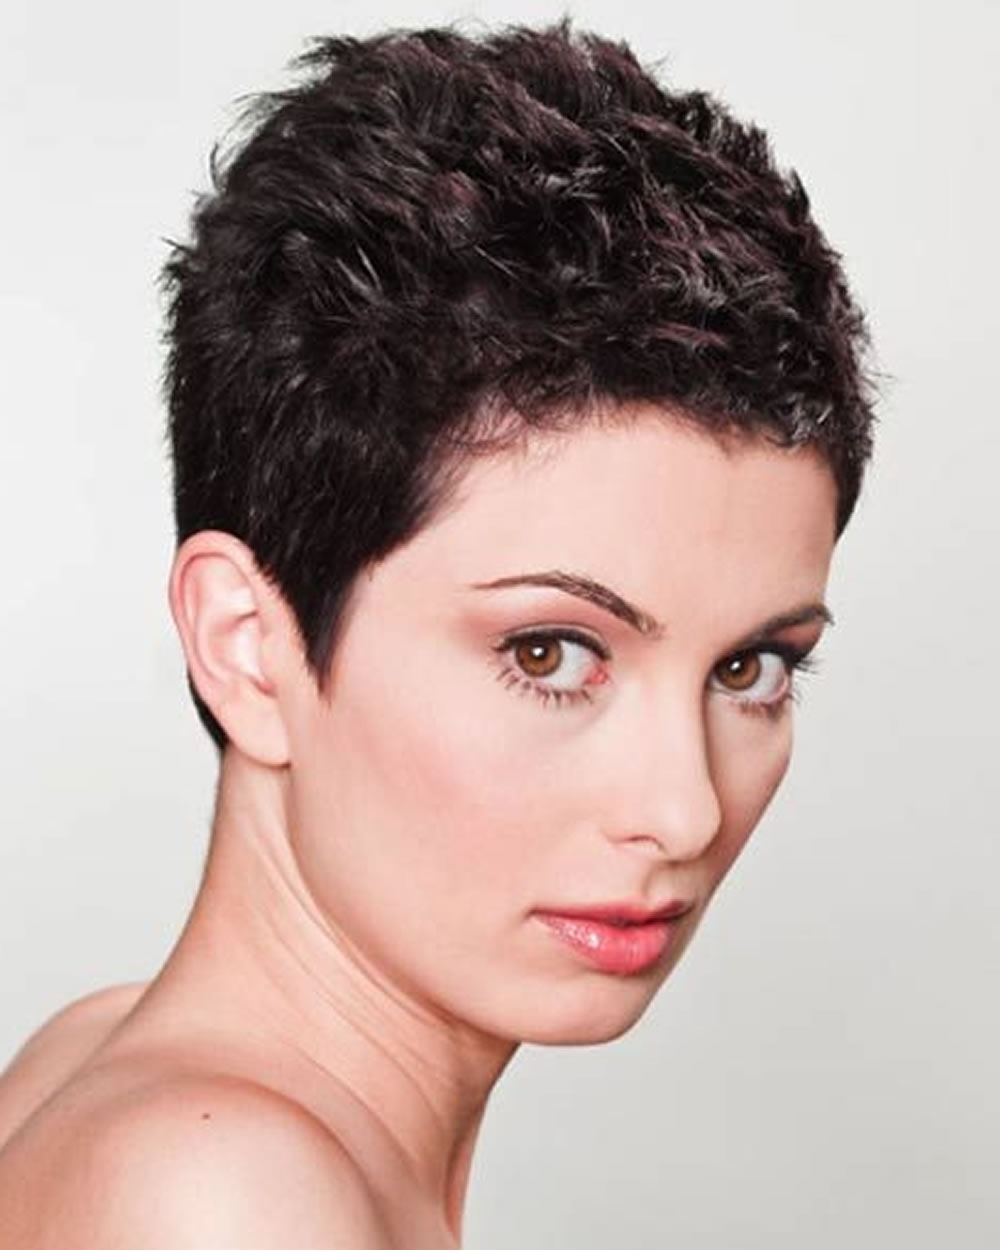 Pixie Haircuts For 2018 & Pixie Short Hairstyle Ideas For Most Current Pixie Hairstyles For Curly Hair (View 15 of 15)